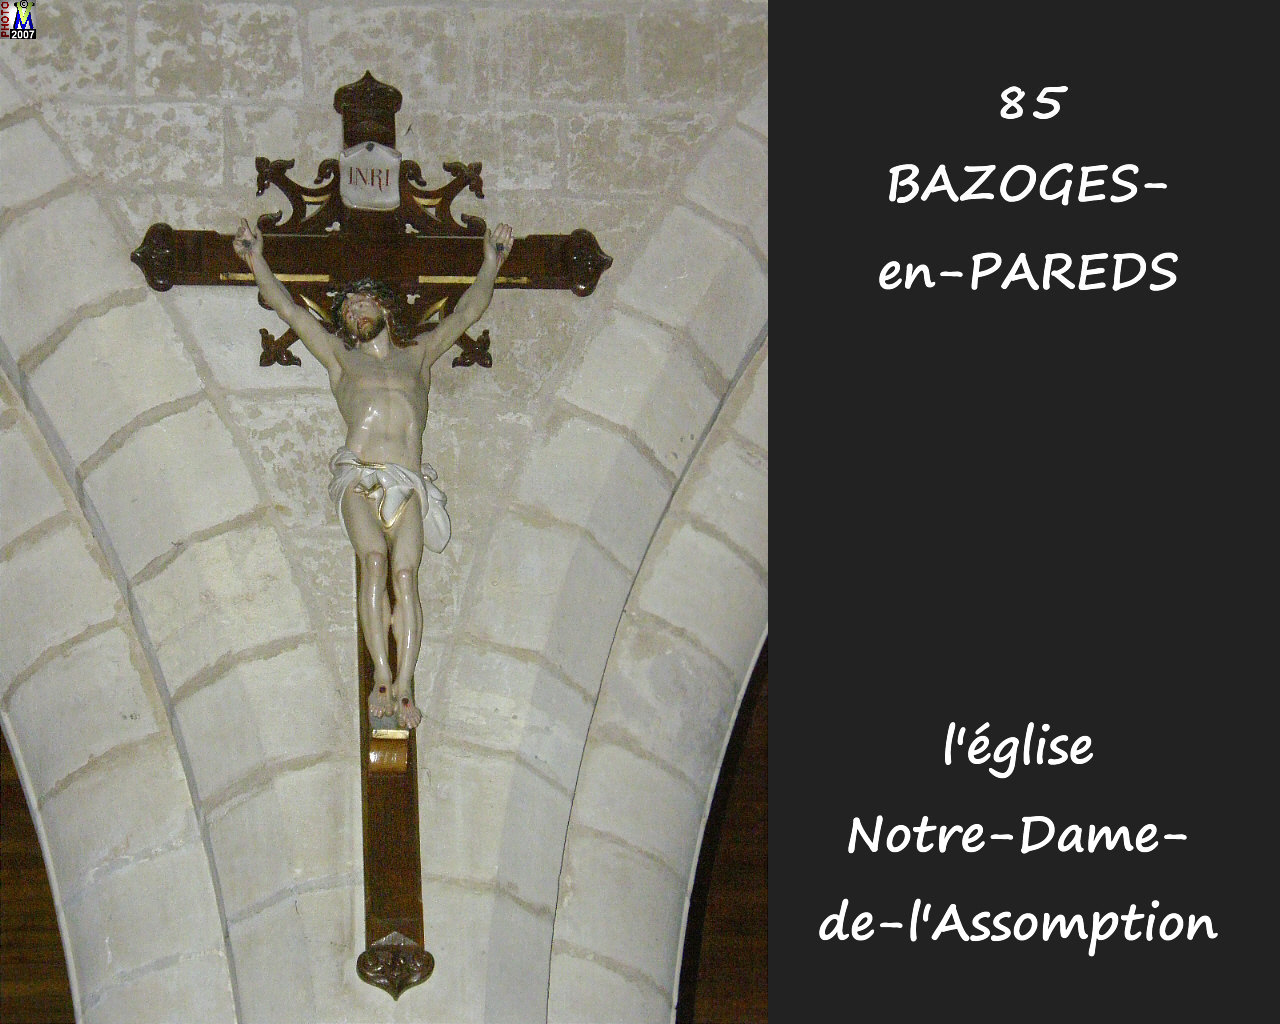 85BAZOGES-PAREDS_eglise_212.jpg